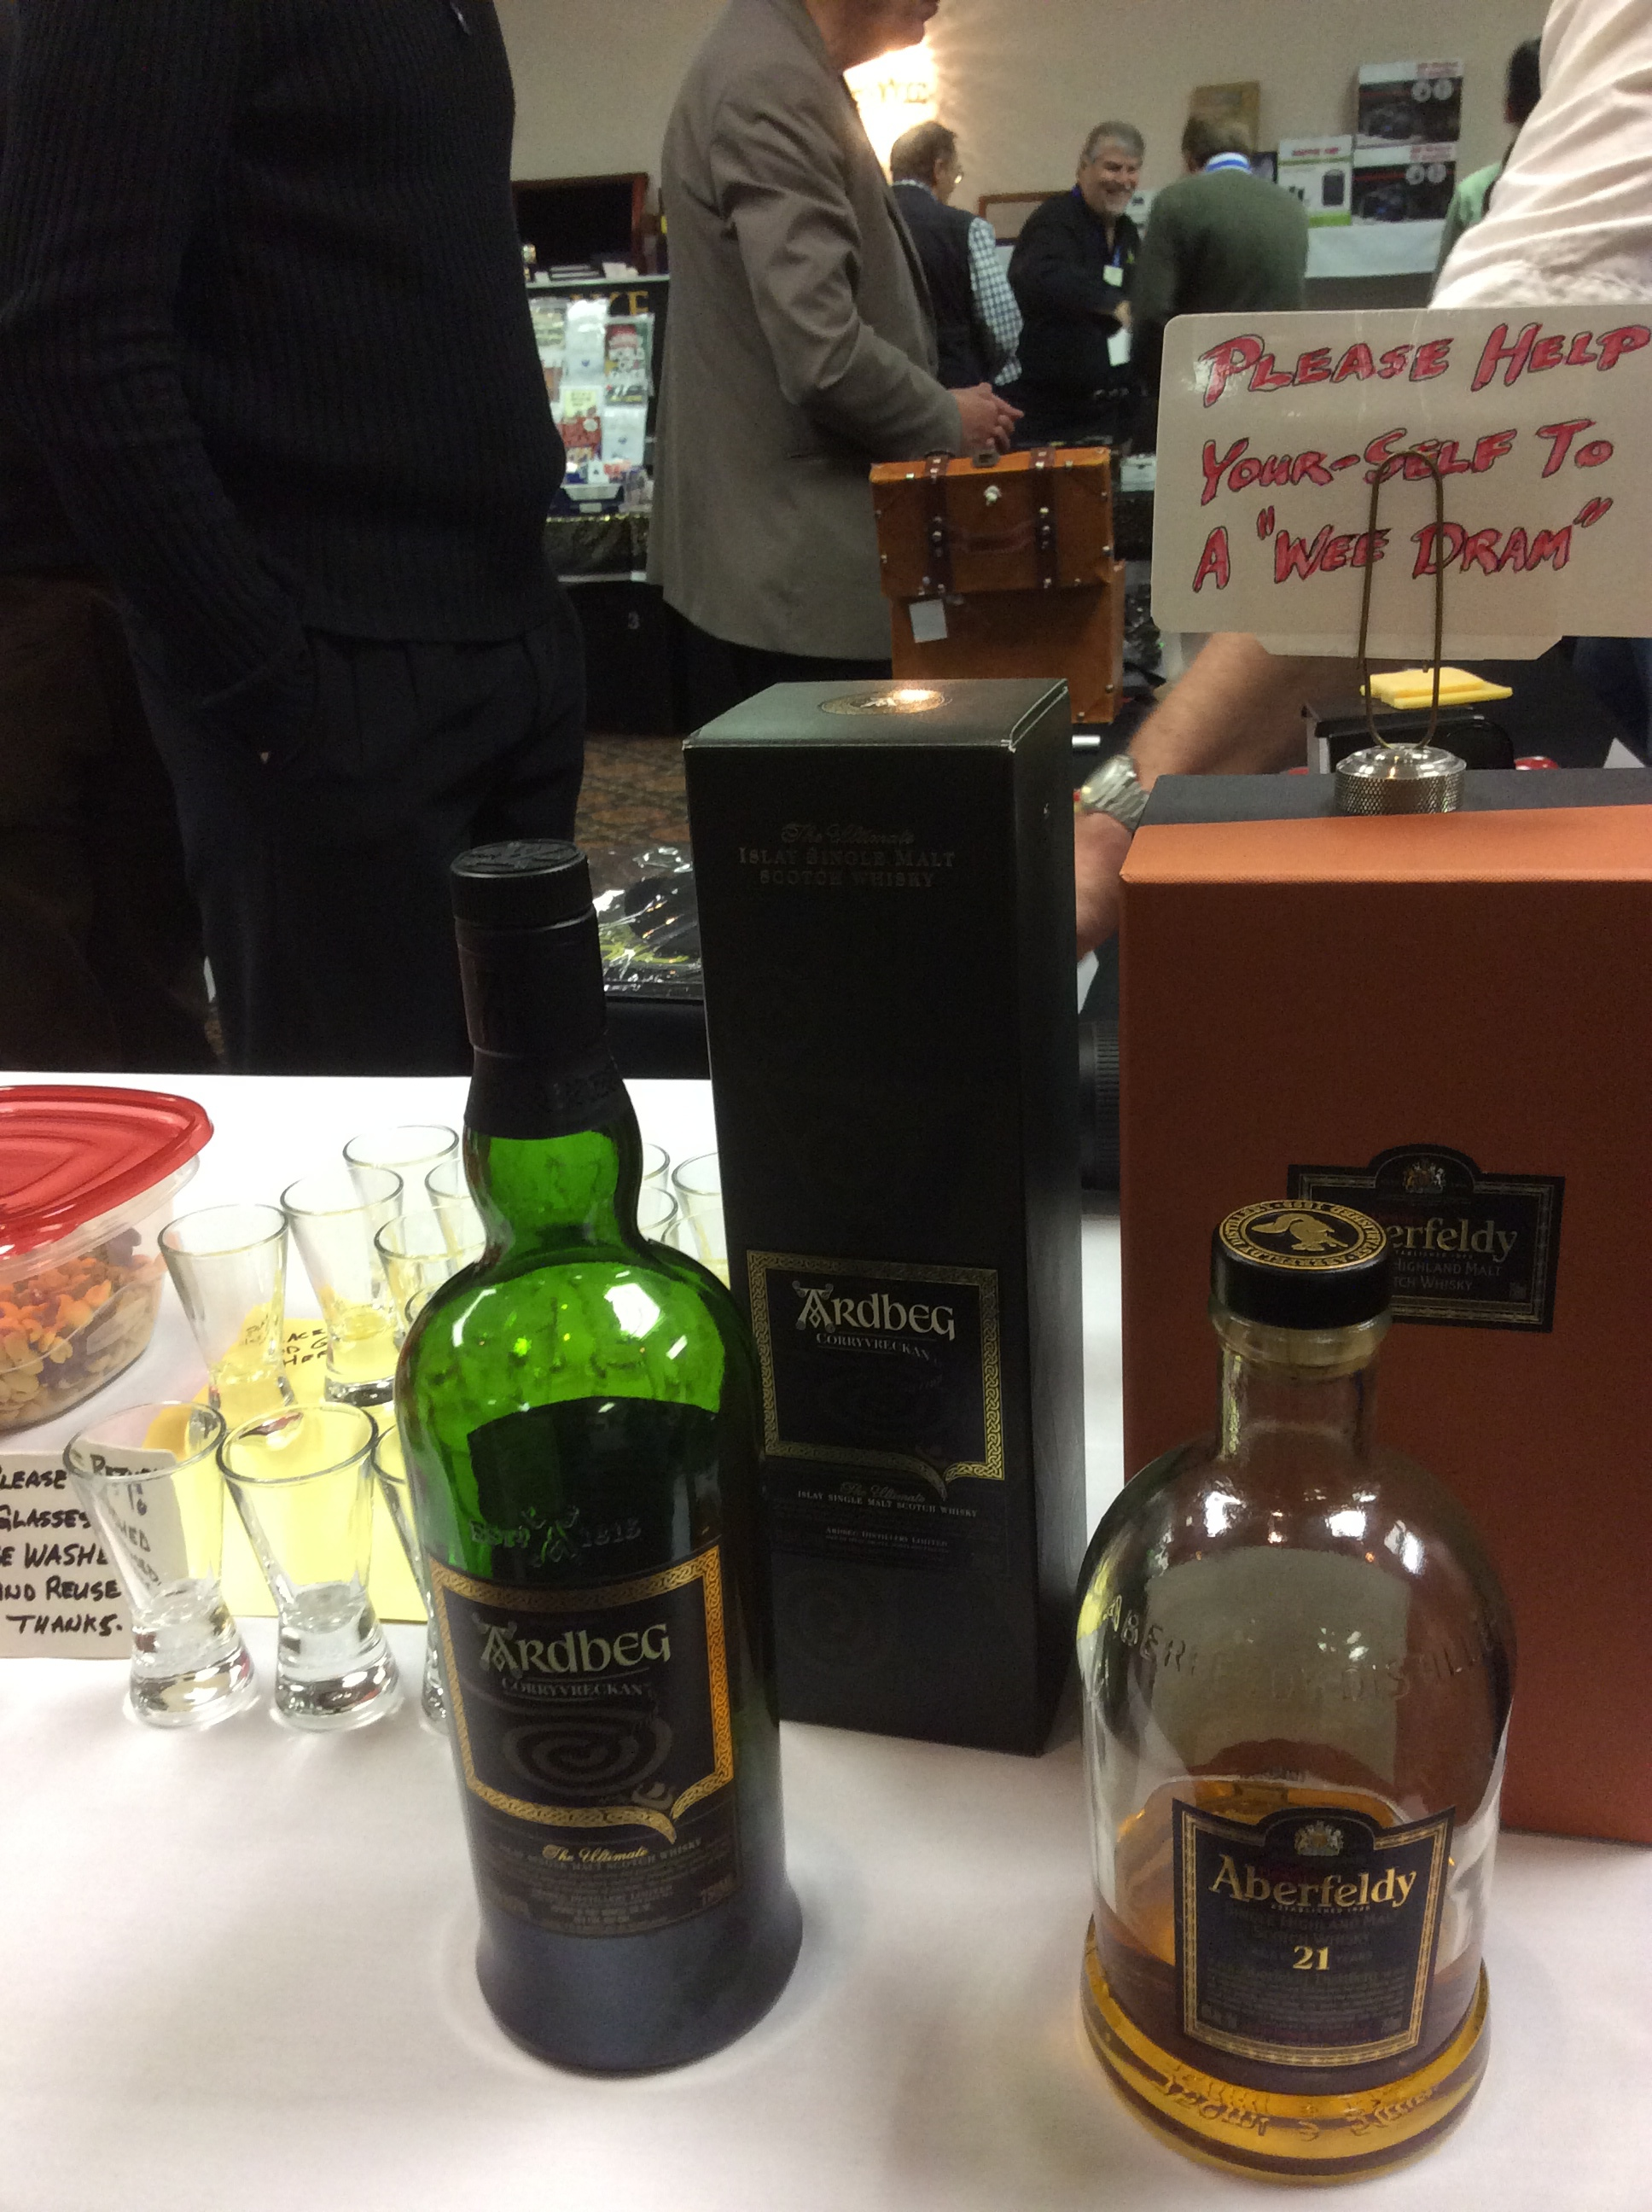 When is the last time you ever got something free in the Dealer's Room? Free Scotch.